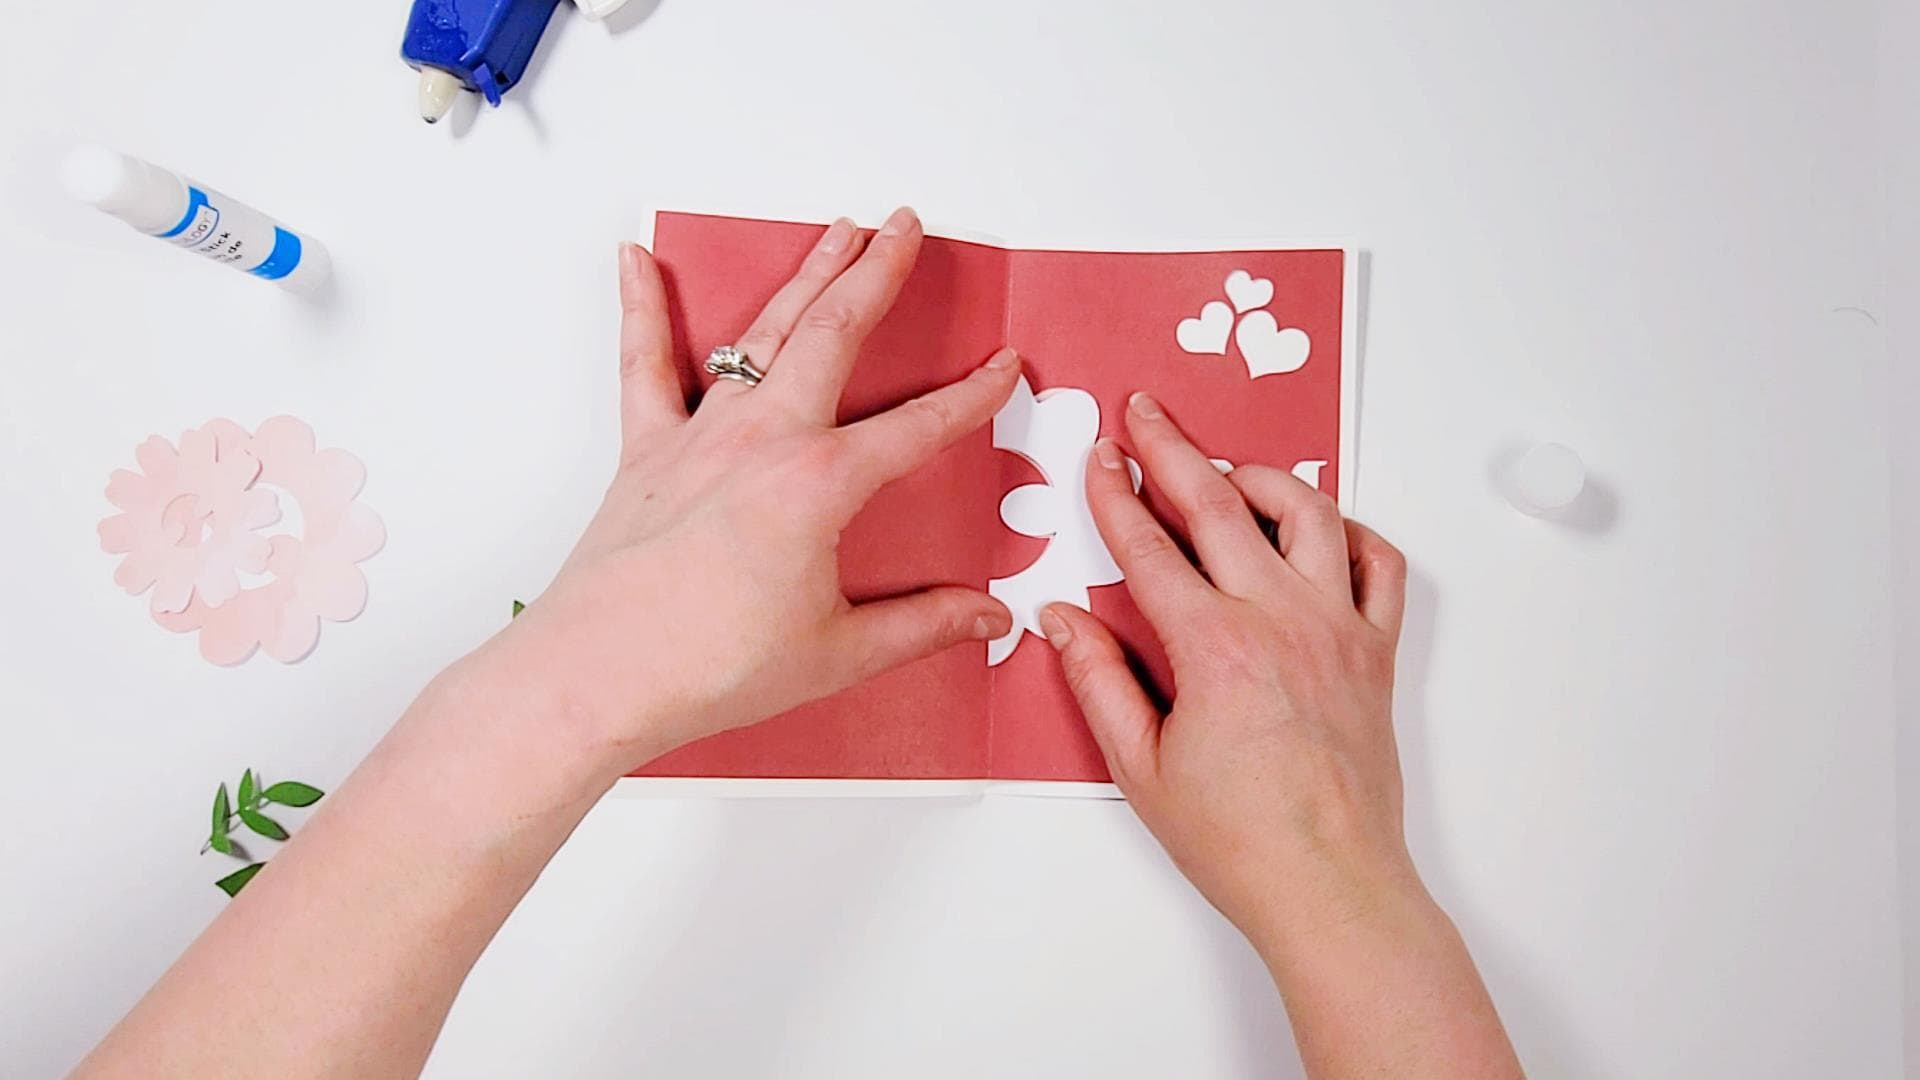 glue a 3d flower to a pop up card for mother's day